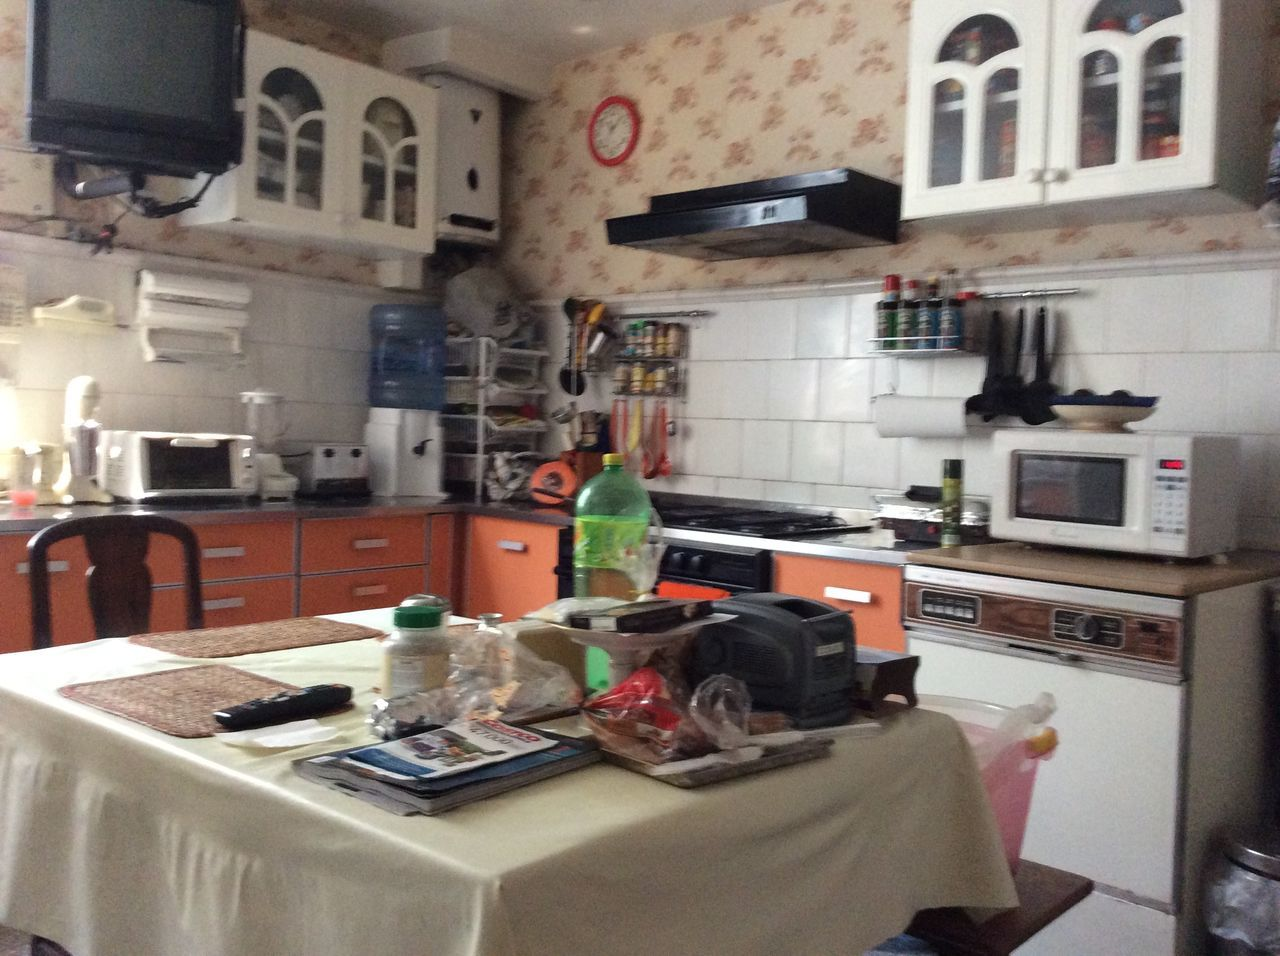 technology, indoors, no people, kitchen, day